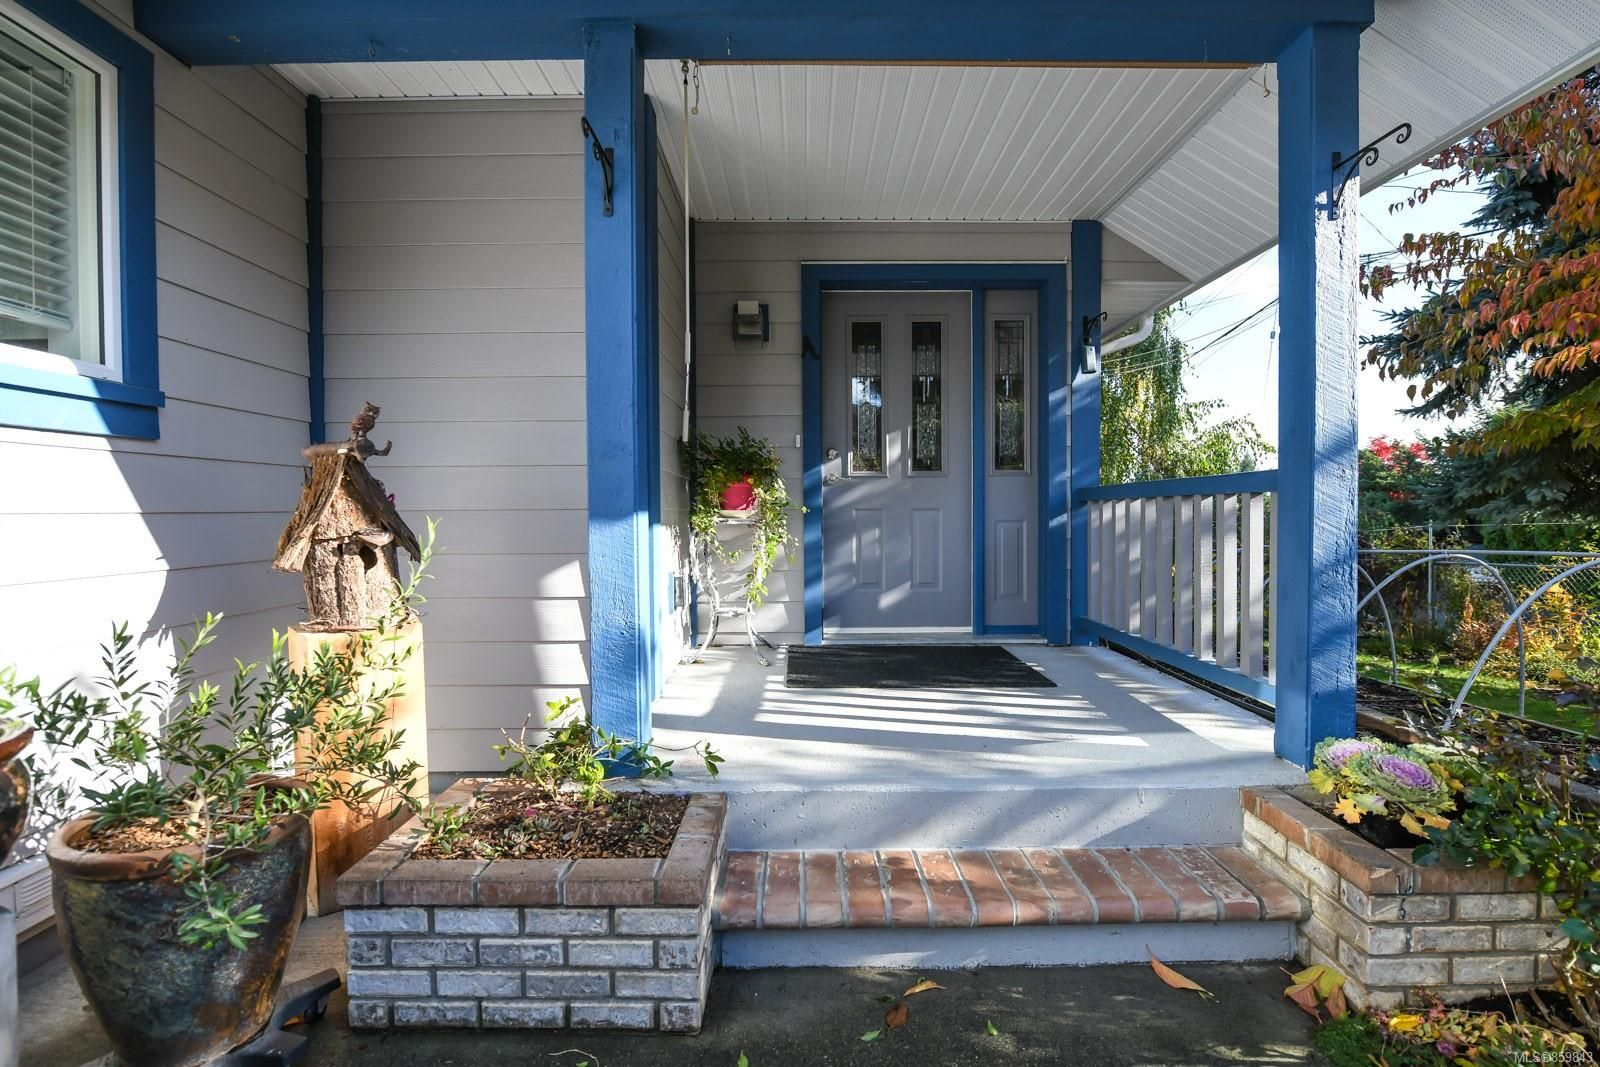 Main Photo: 2588 Ulverston Ave in : CV Cumberland House for sale (Comox Valley)  : MLS®# 859843